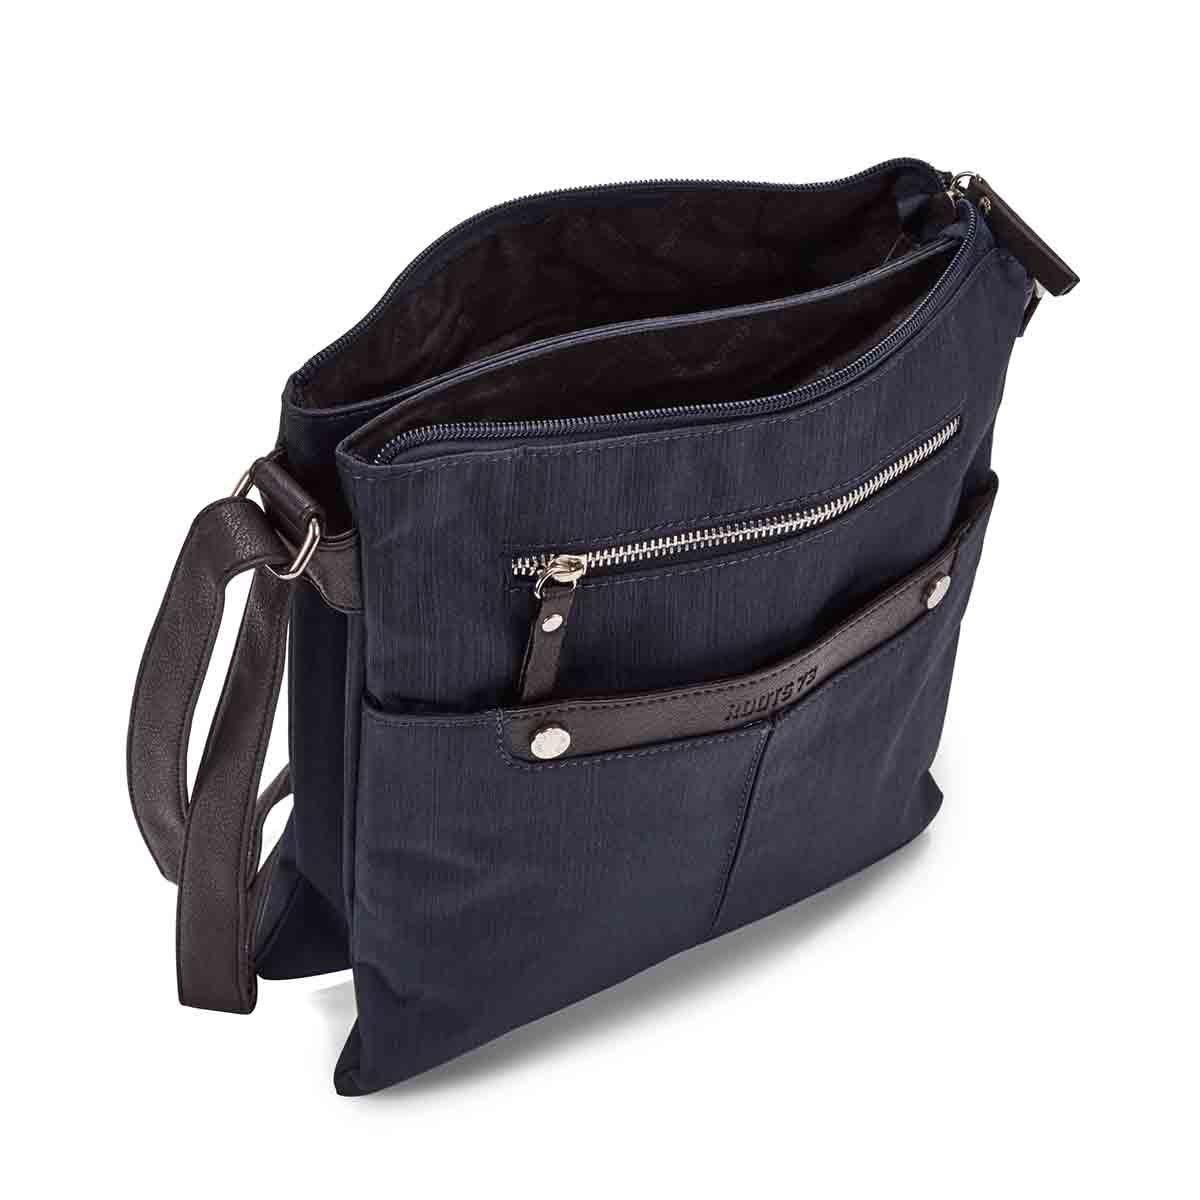 Lds nvy crossdye 2 compartment crossbody